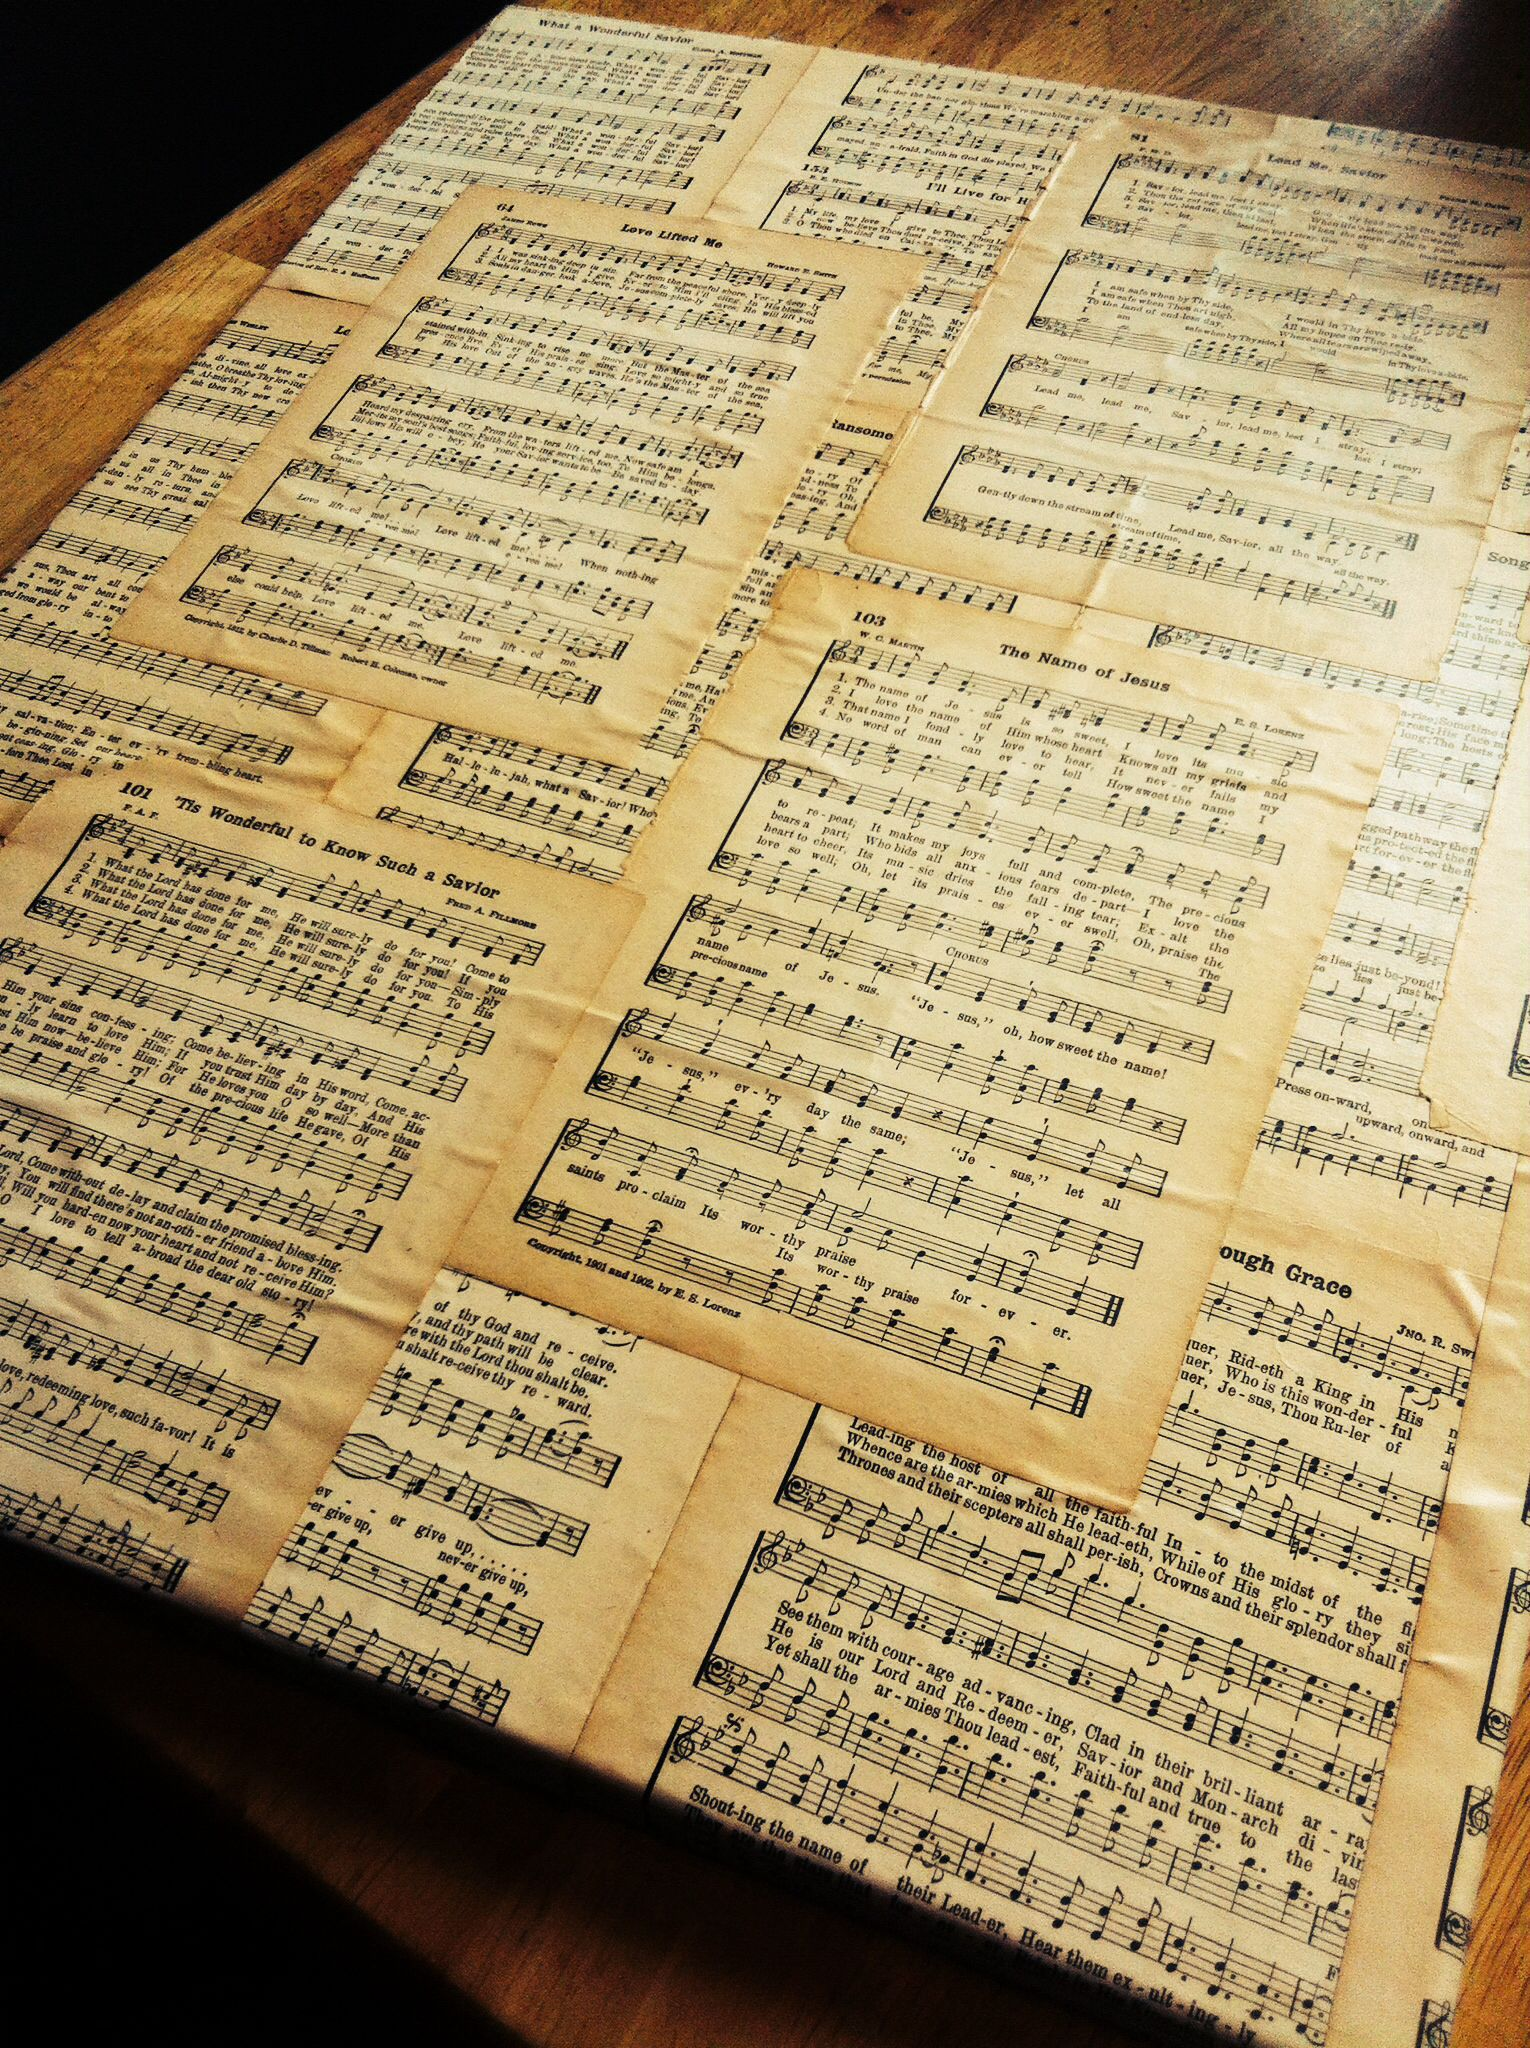 Get an old hymnal, take some of the hymns out and mod podge them ...